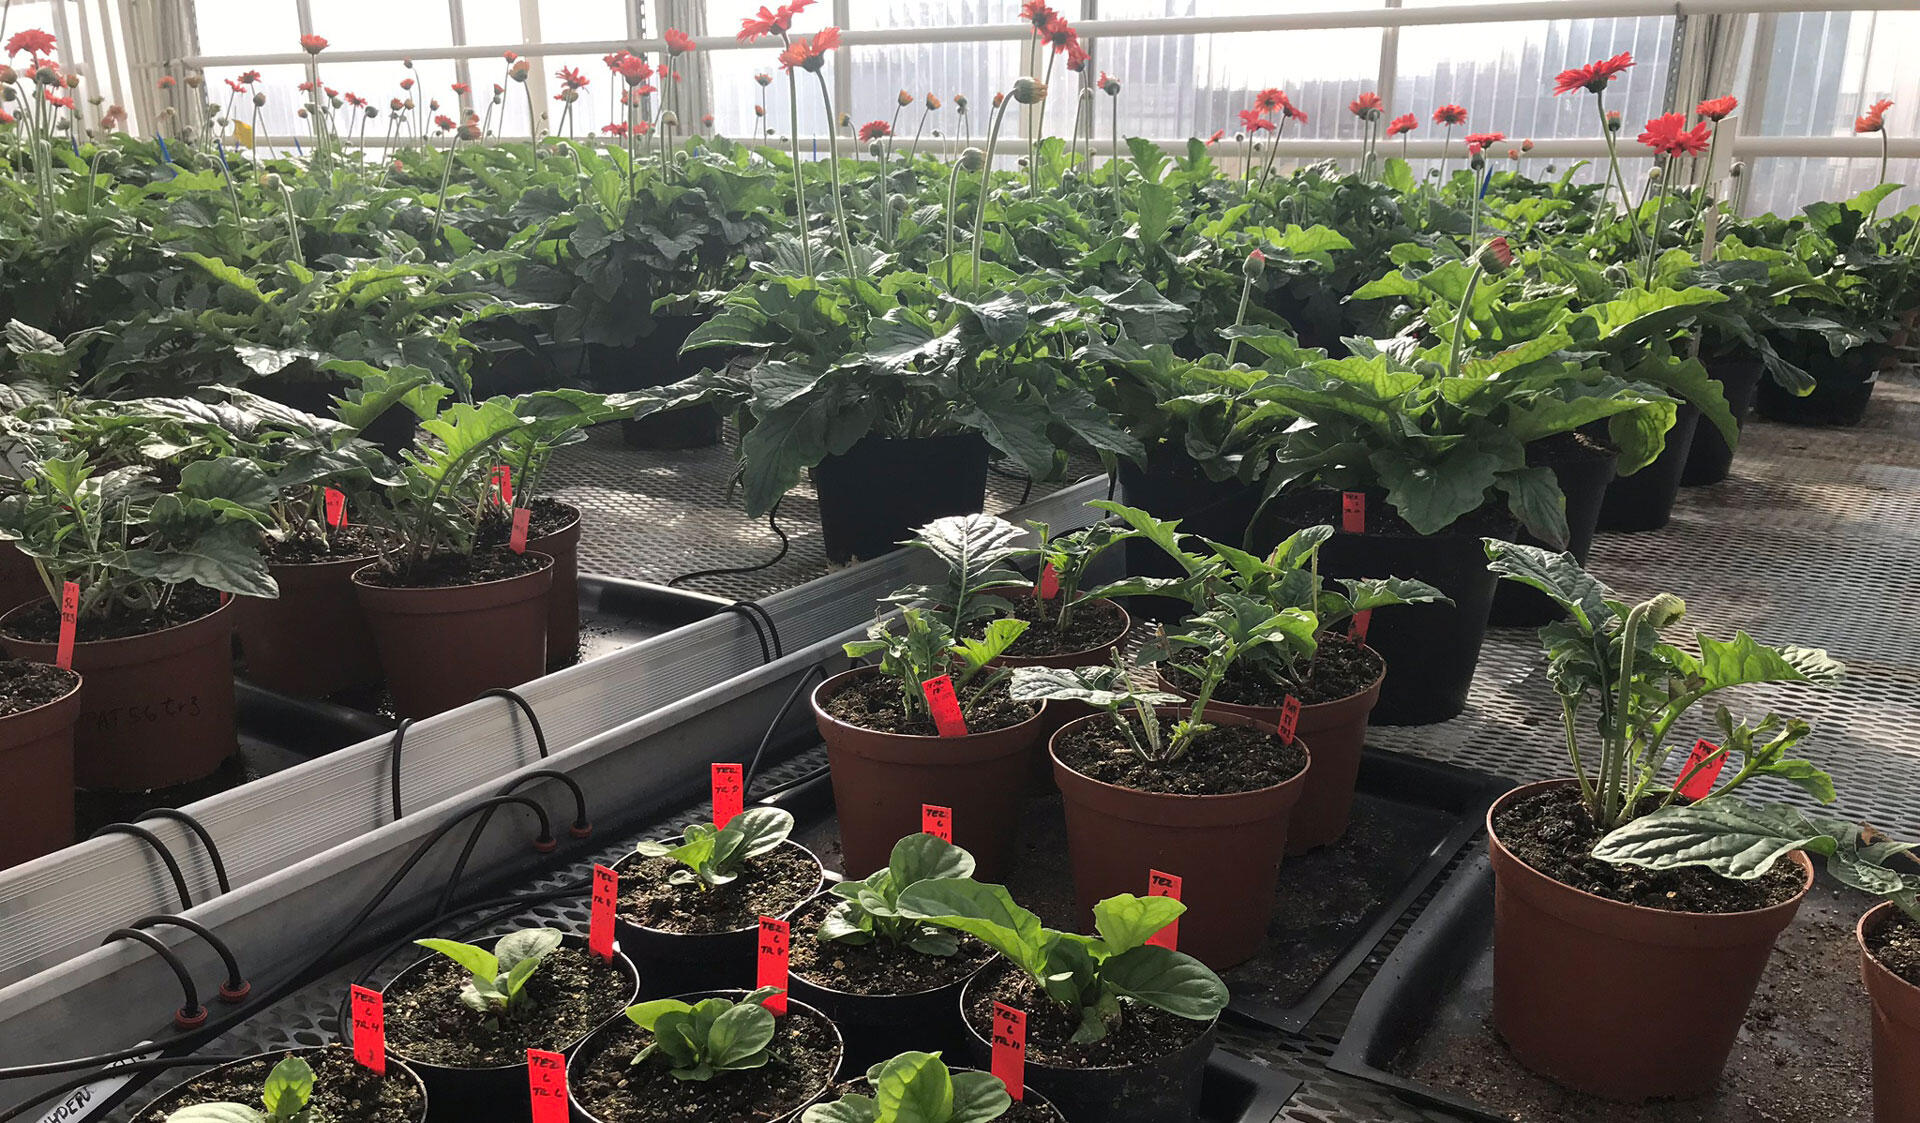 Plants in pots in a greenhouse at the Viikki Campus.